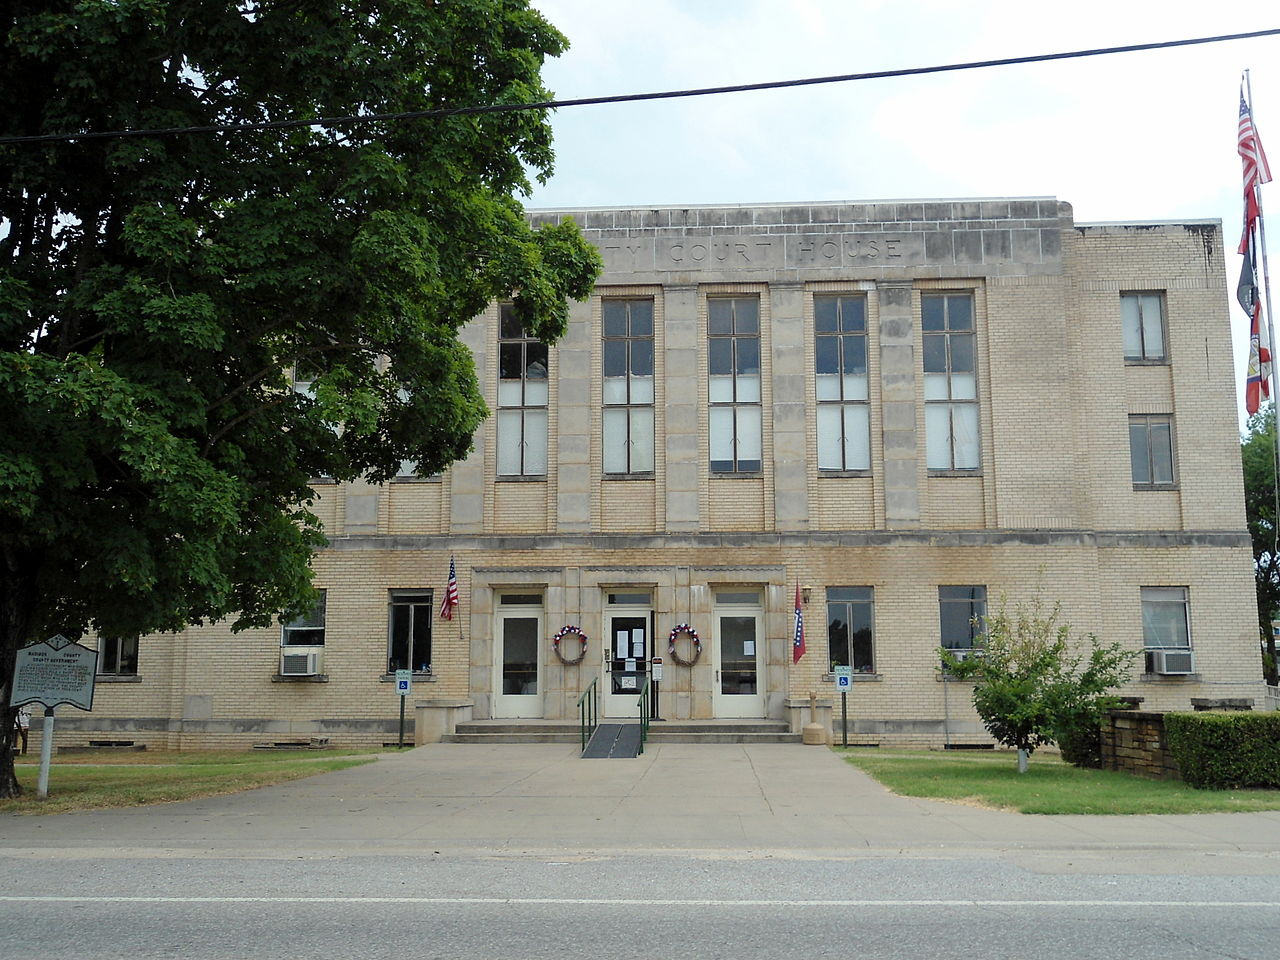 The Madison County Courthouse was built in 1939 with funding from the Federal Emergency Administration.